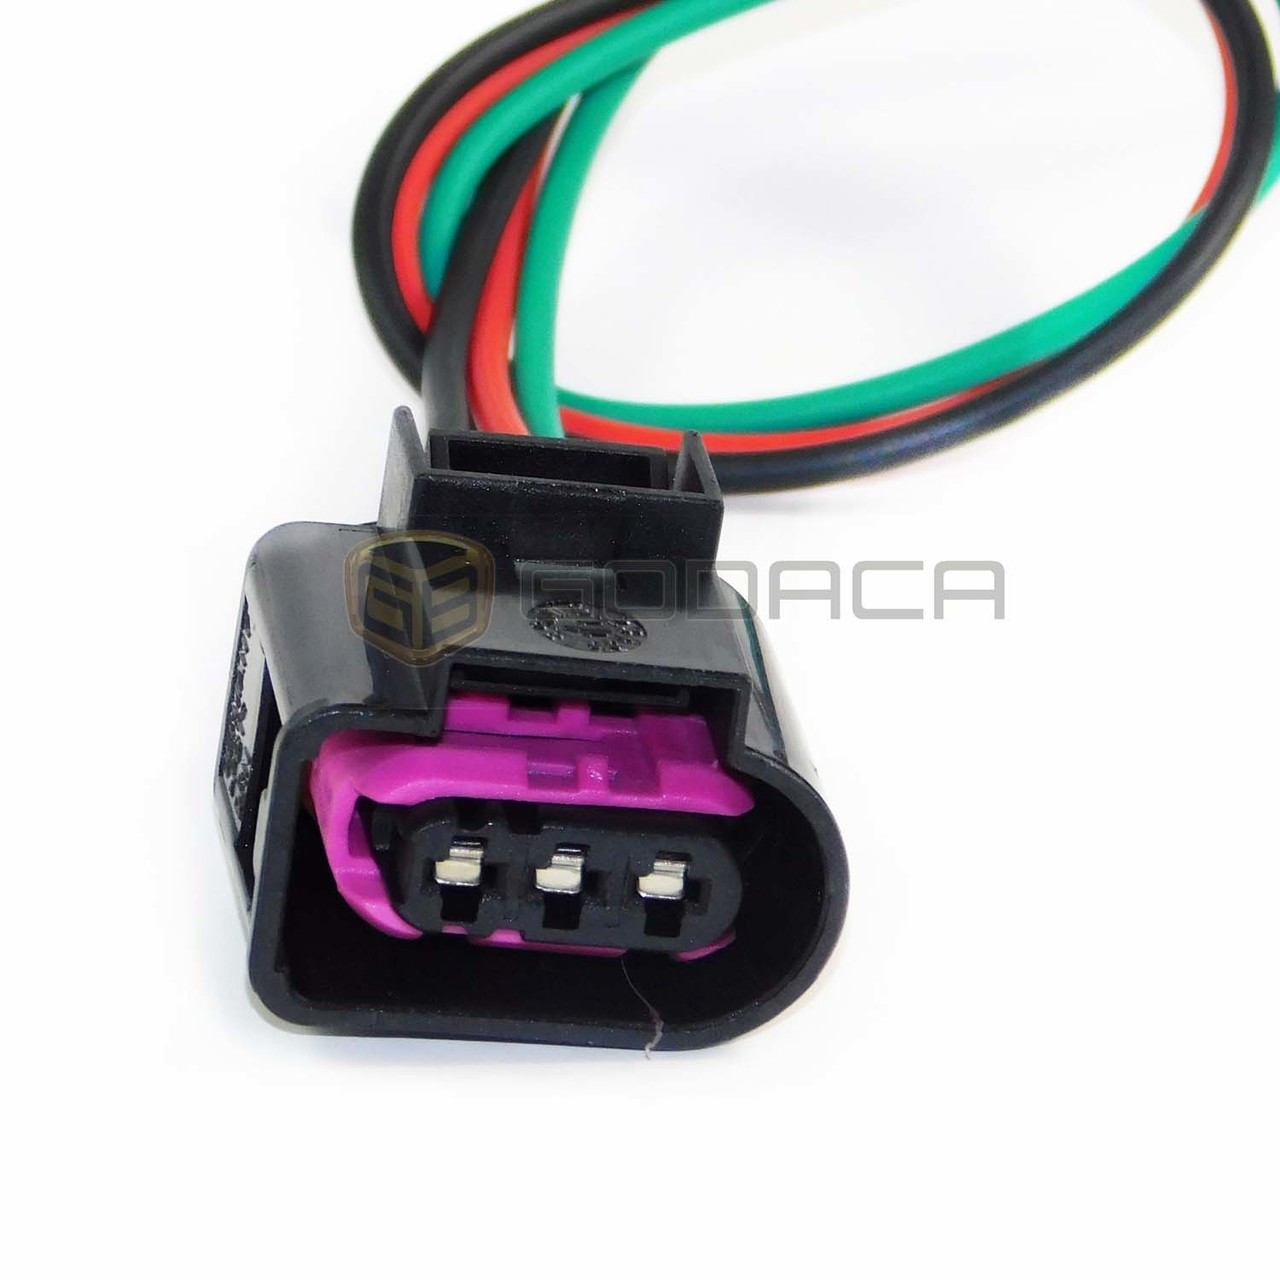 01020101000829__27949.1496084108?c=2&imbypass=on 1x connector wiring harness 3 pin 3 way for audi volkswagen godaca